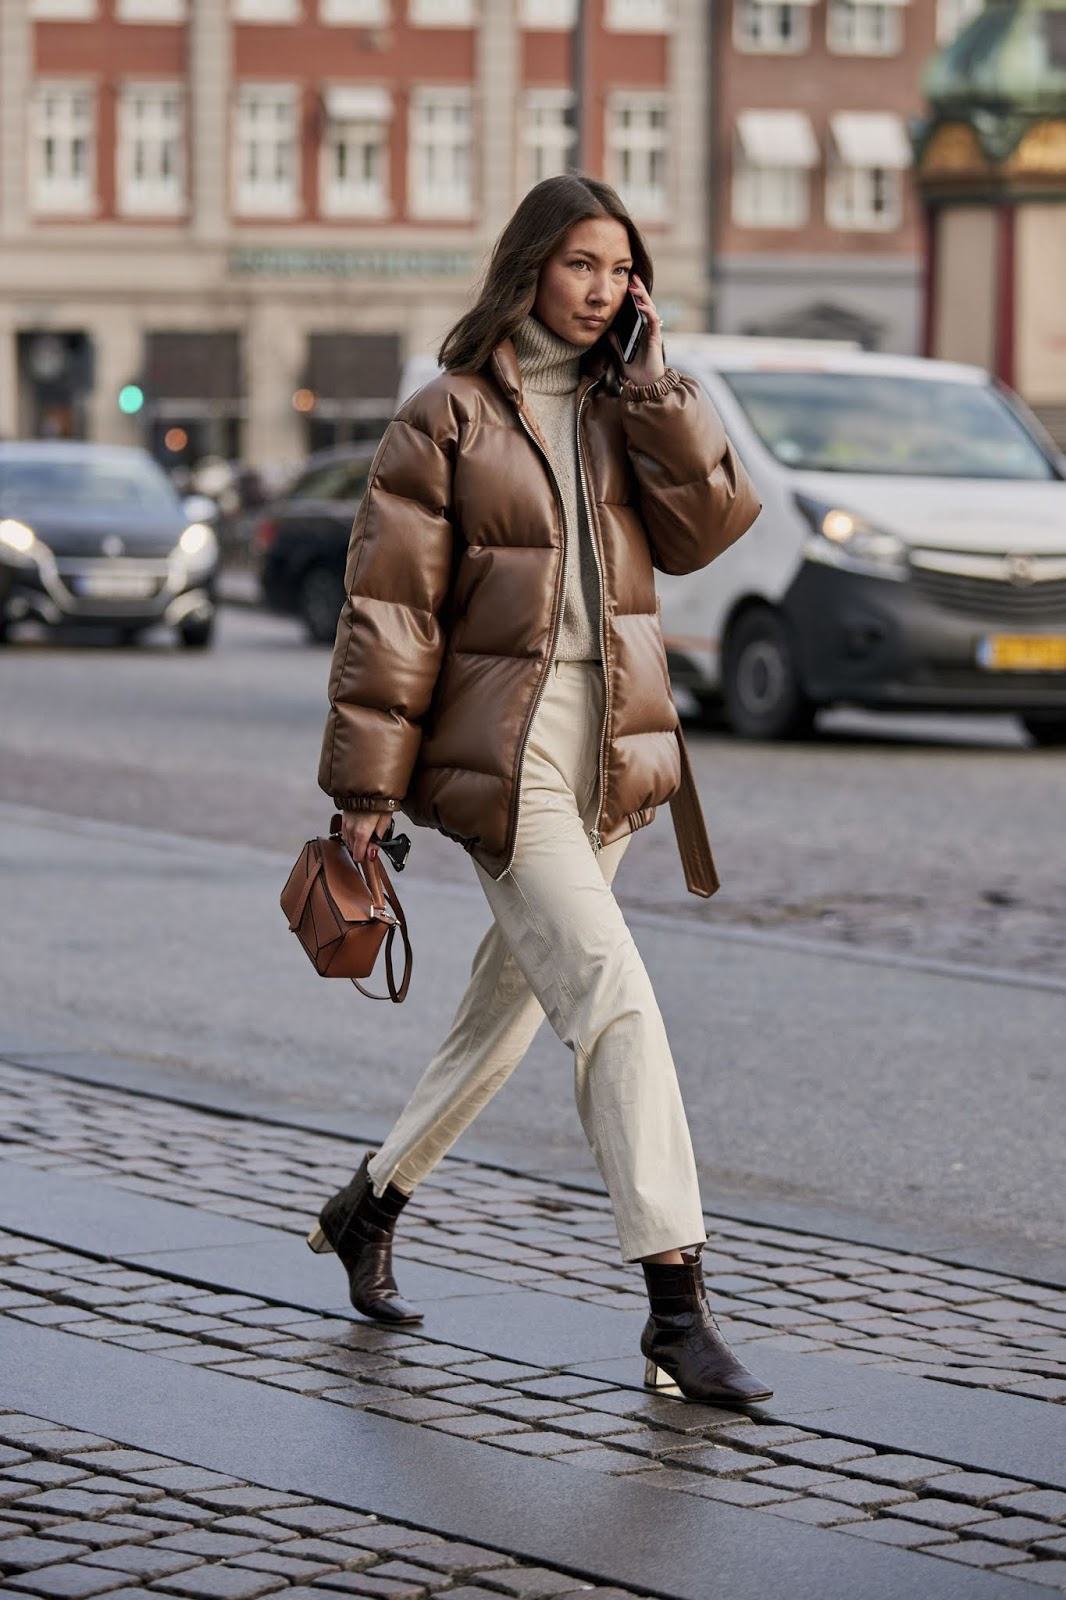 An Elevated Street Style Take on the Puffer Coat